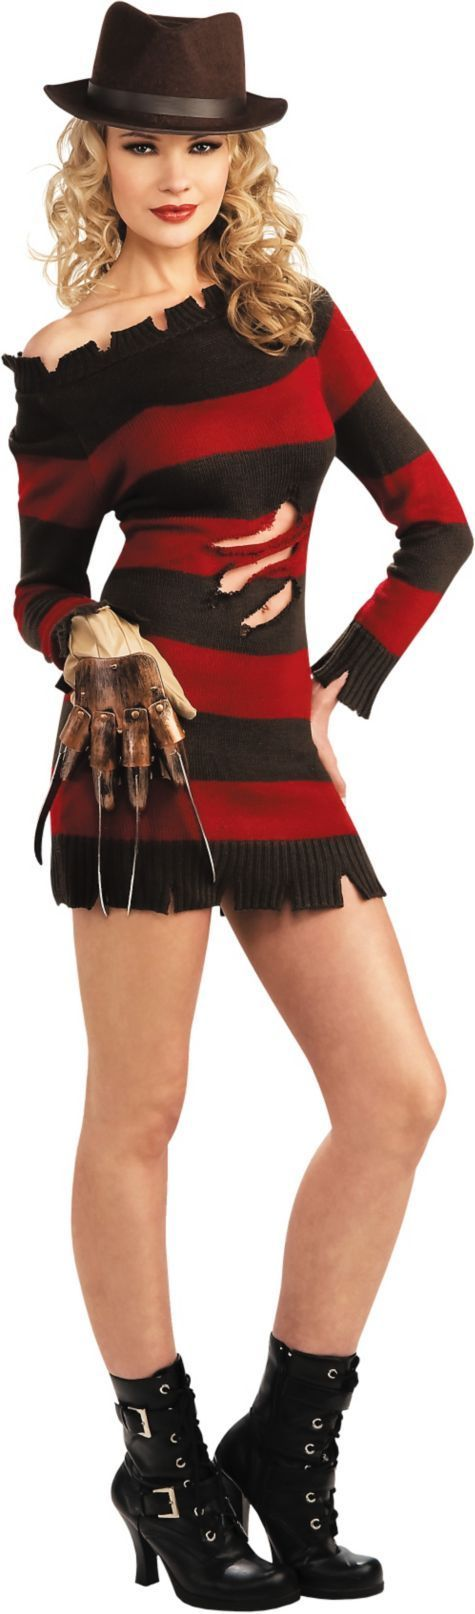 Nightmare on Elm Street Miss Kreuger Costume for Women - Party City: